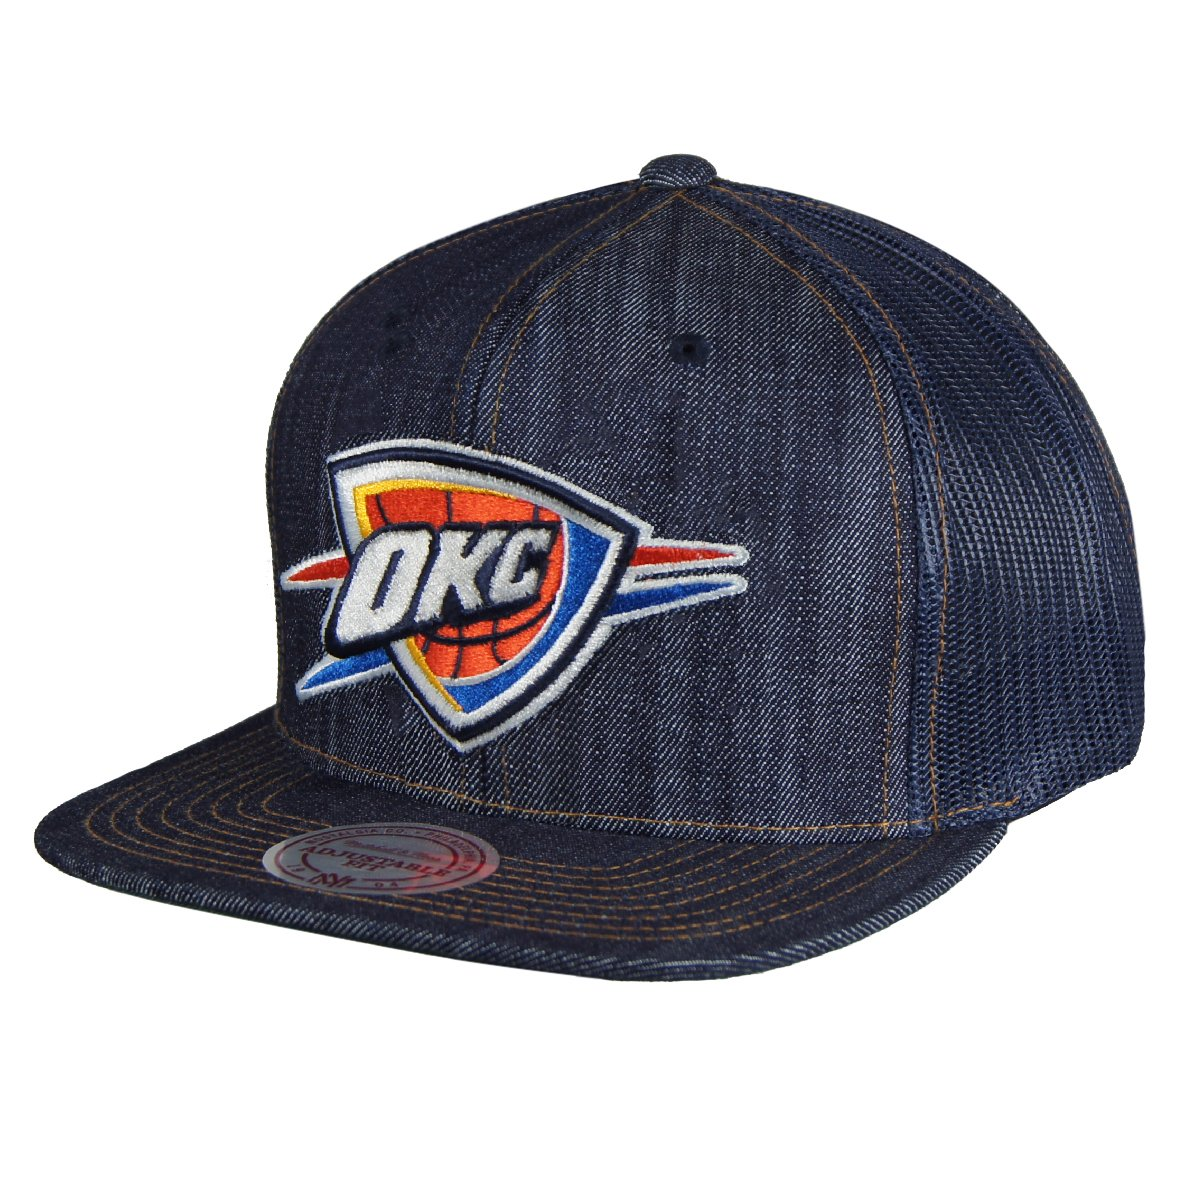 b690138628c Oklahoma City Thunder Mitchell   Ness Dark Denim Front Trucker Mesh Back  Snapback Hat  Amazon.in  Clothing   Accessories